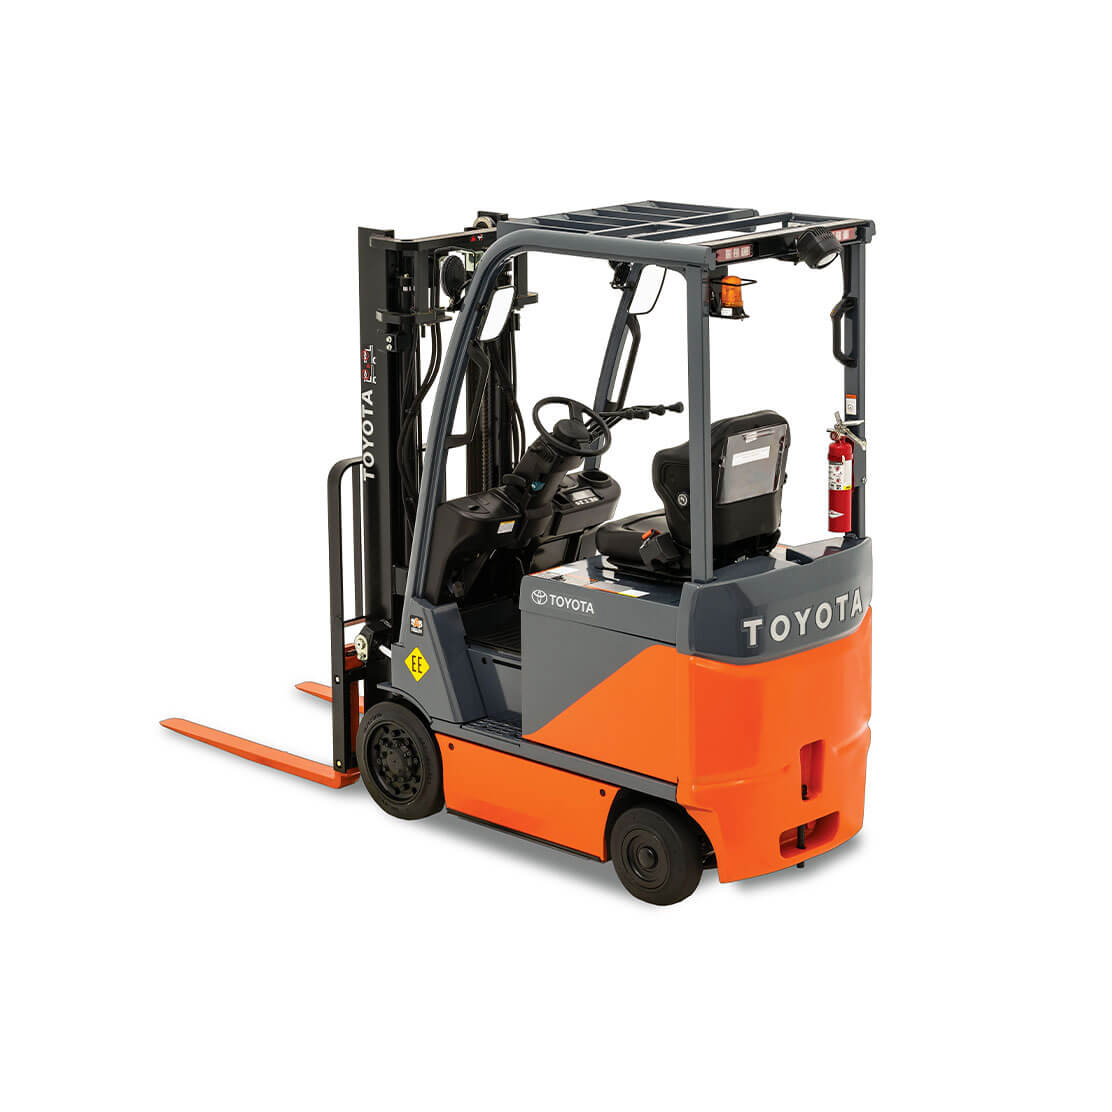 Core Electric Forklift side view 1